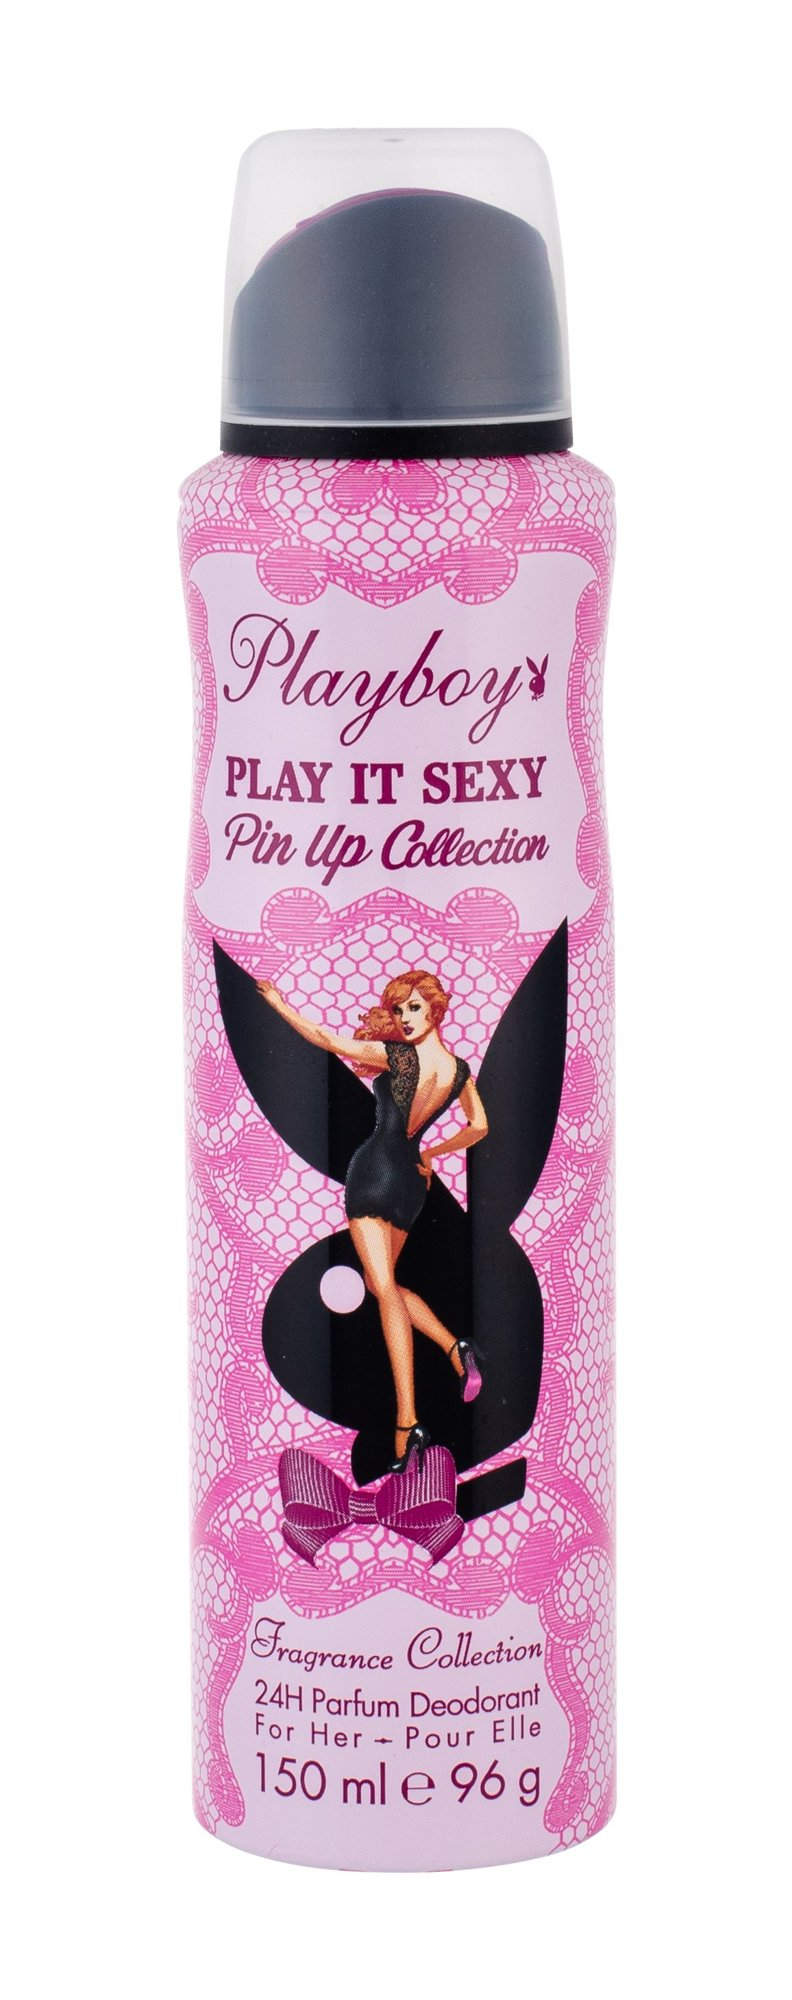 Playboy Play It Sexy Pin Up For Her Deodorant 150ml